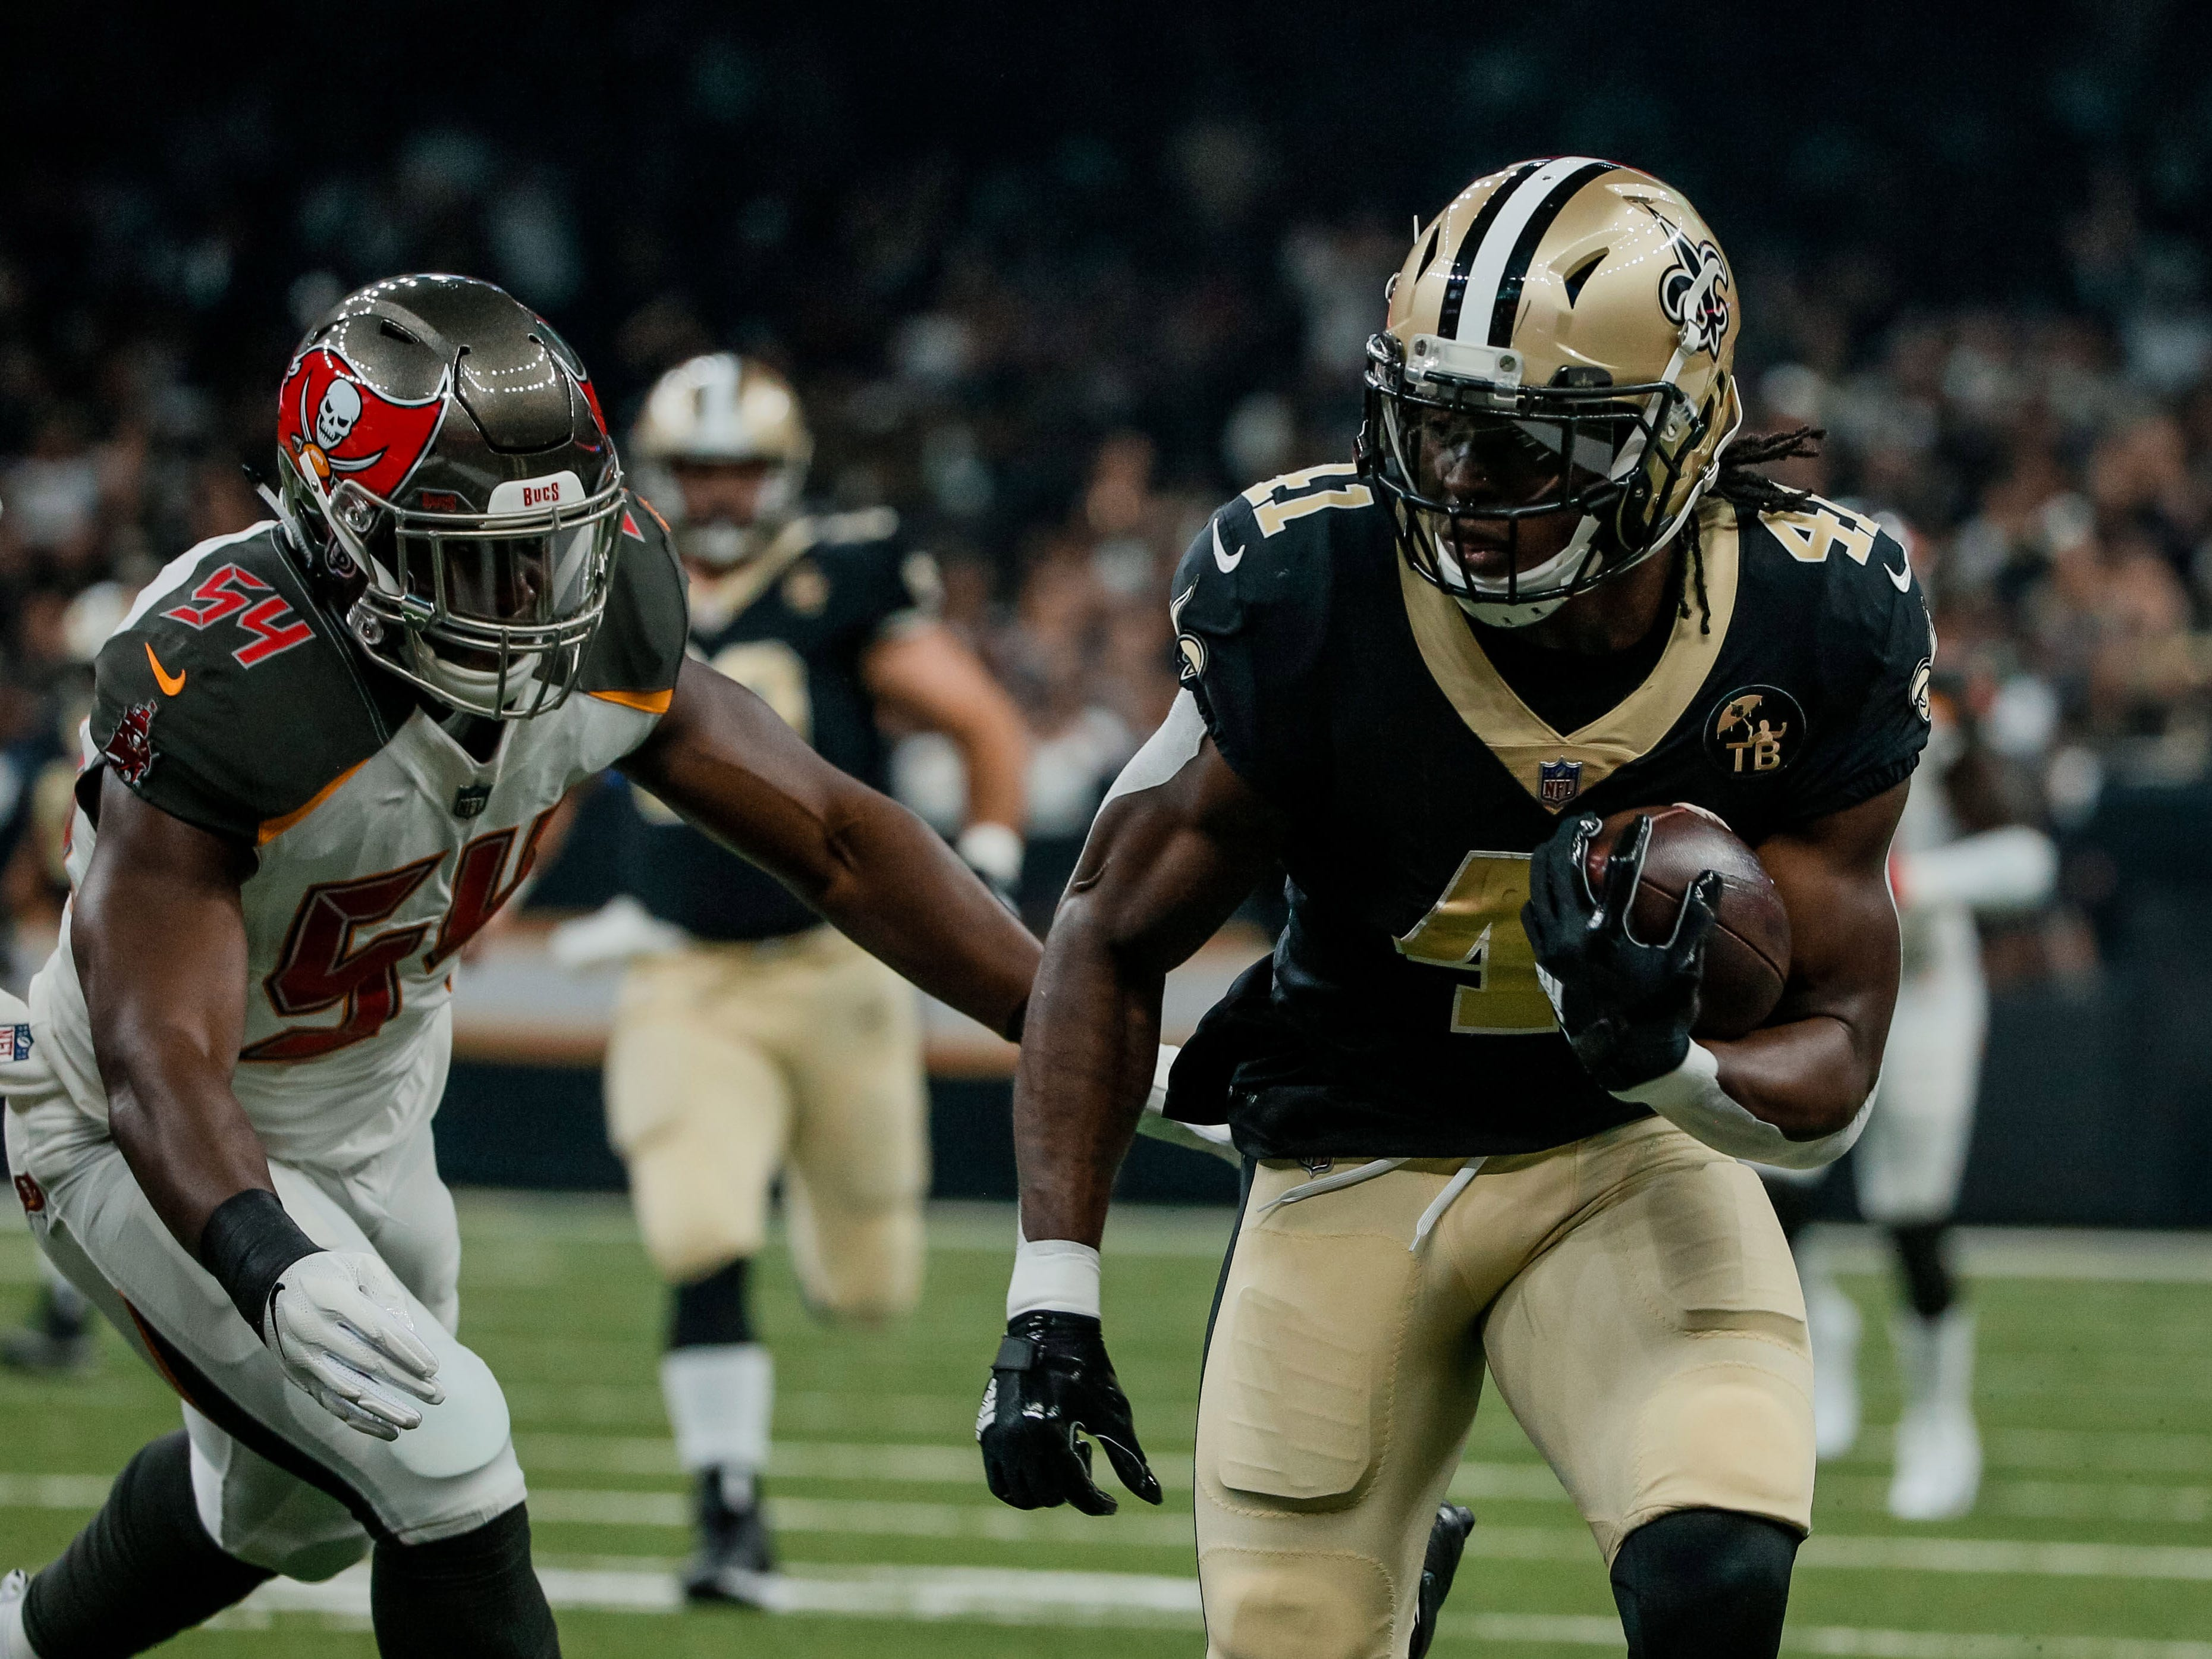 New Orleans Saints running back Alvin Kamara (runs past Tampa Bay Buccaneers linebacker Lavonte David during the first quarter of a game at the Mercedes-Benz Superdome.